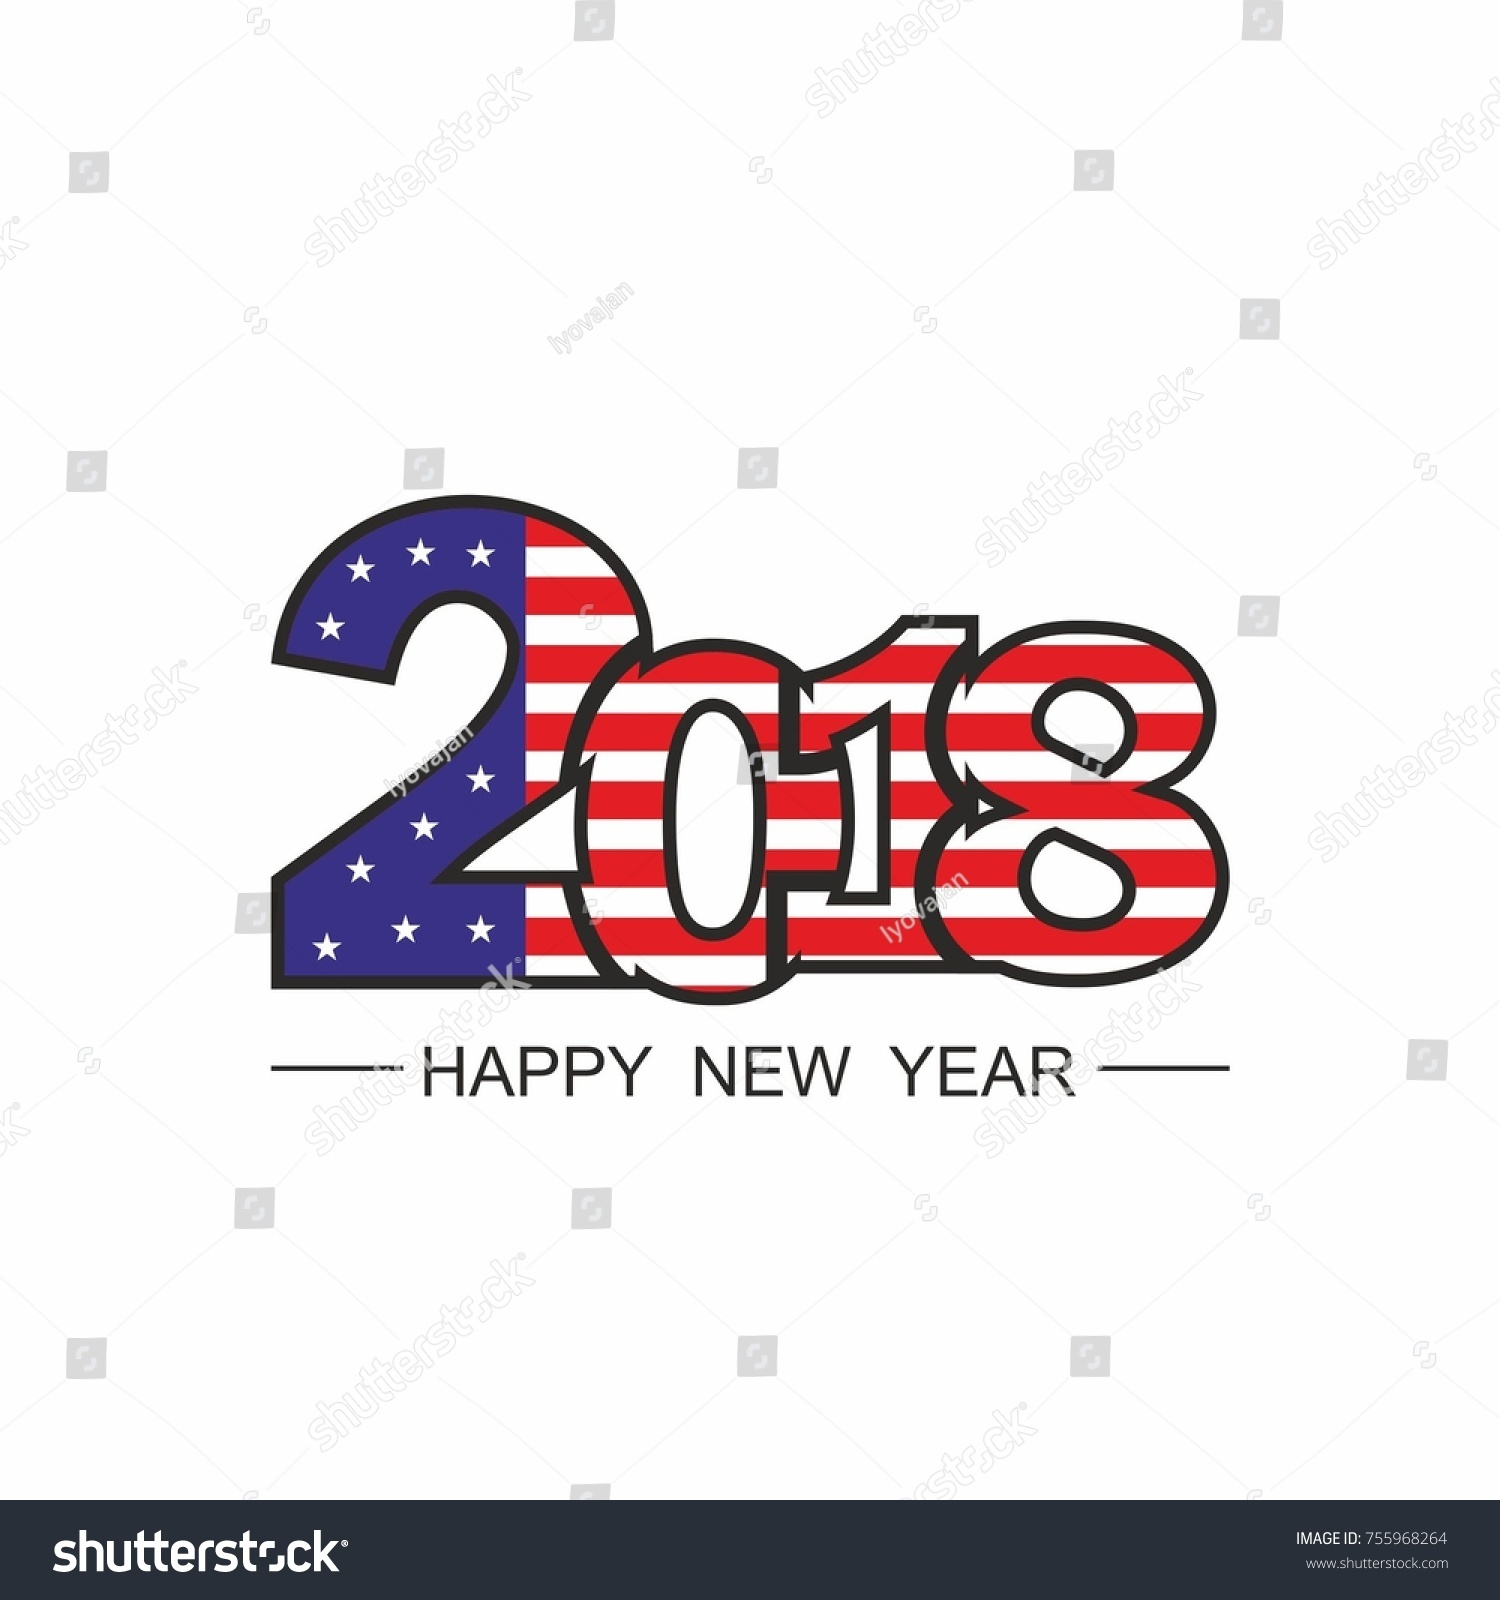 happy new year 2018 text design vector on white background usa united states of